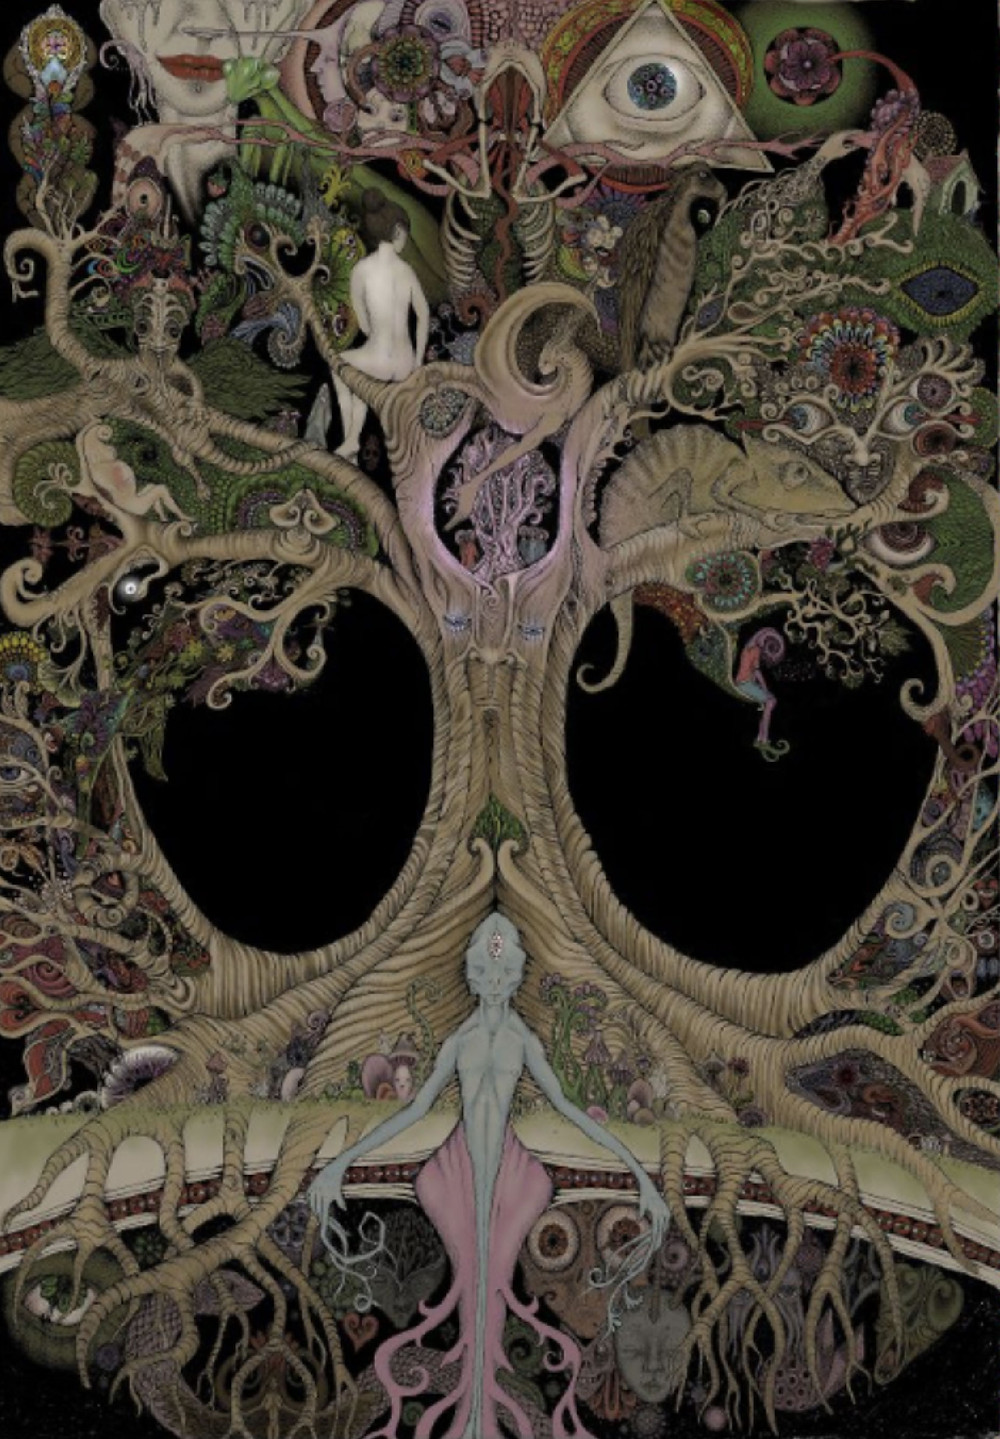 Tree of life artwork by Mr. Crystalface